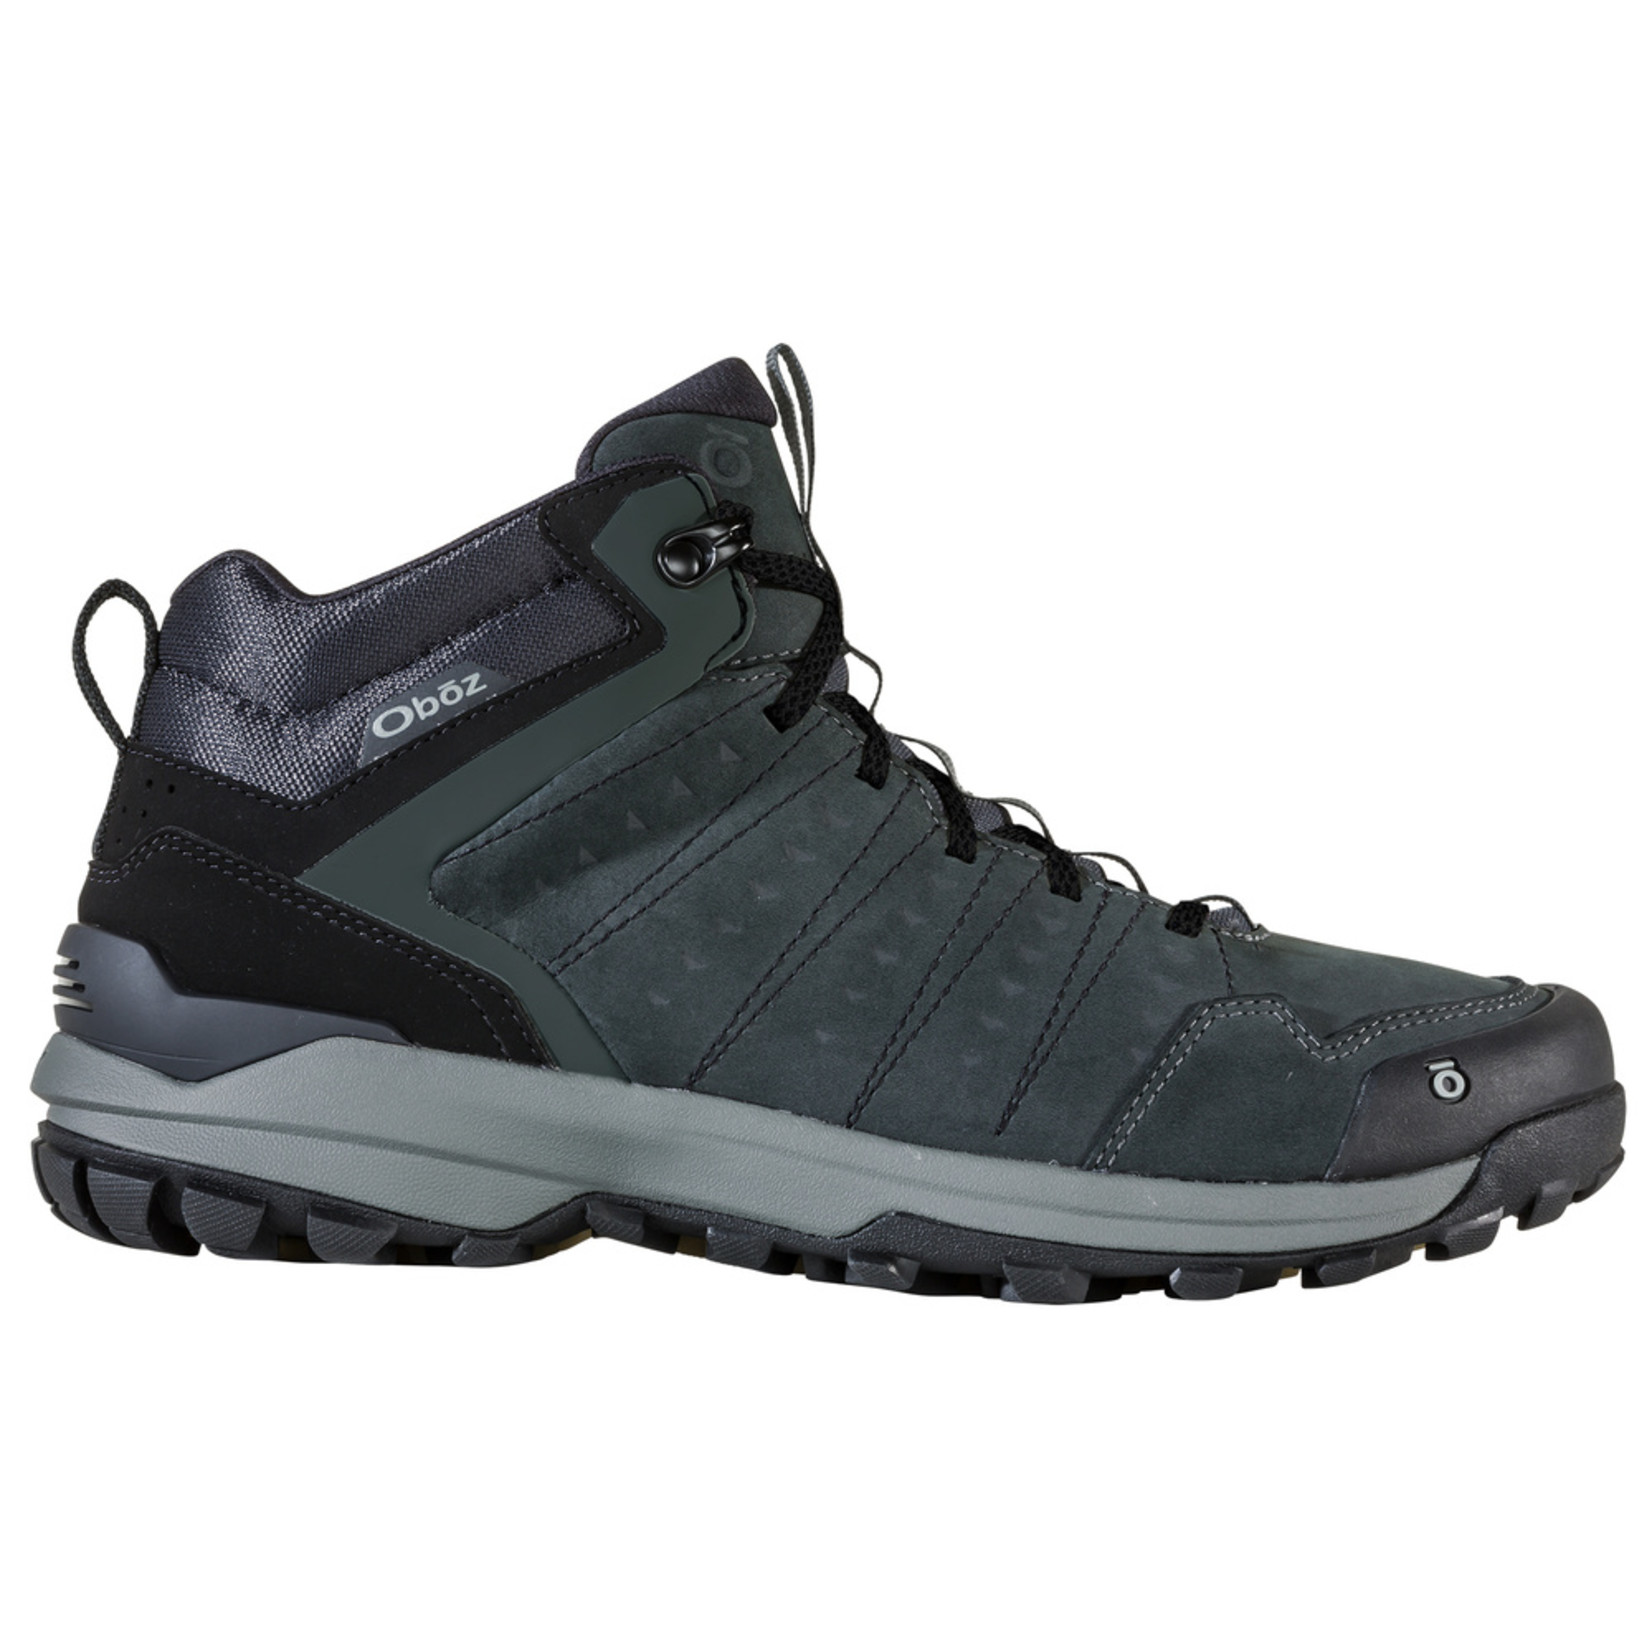 Oboz M Sypes Mid Leather B-Dry Waterproof